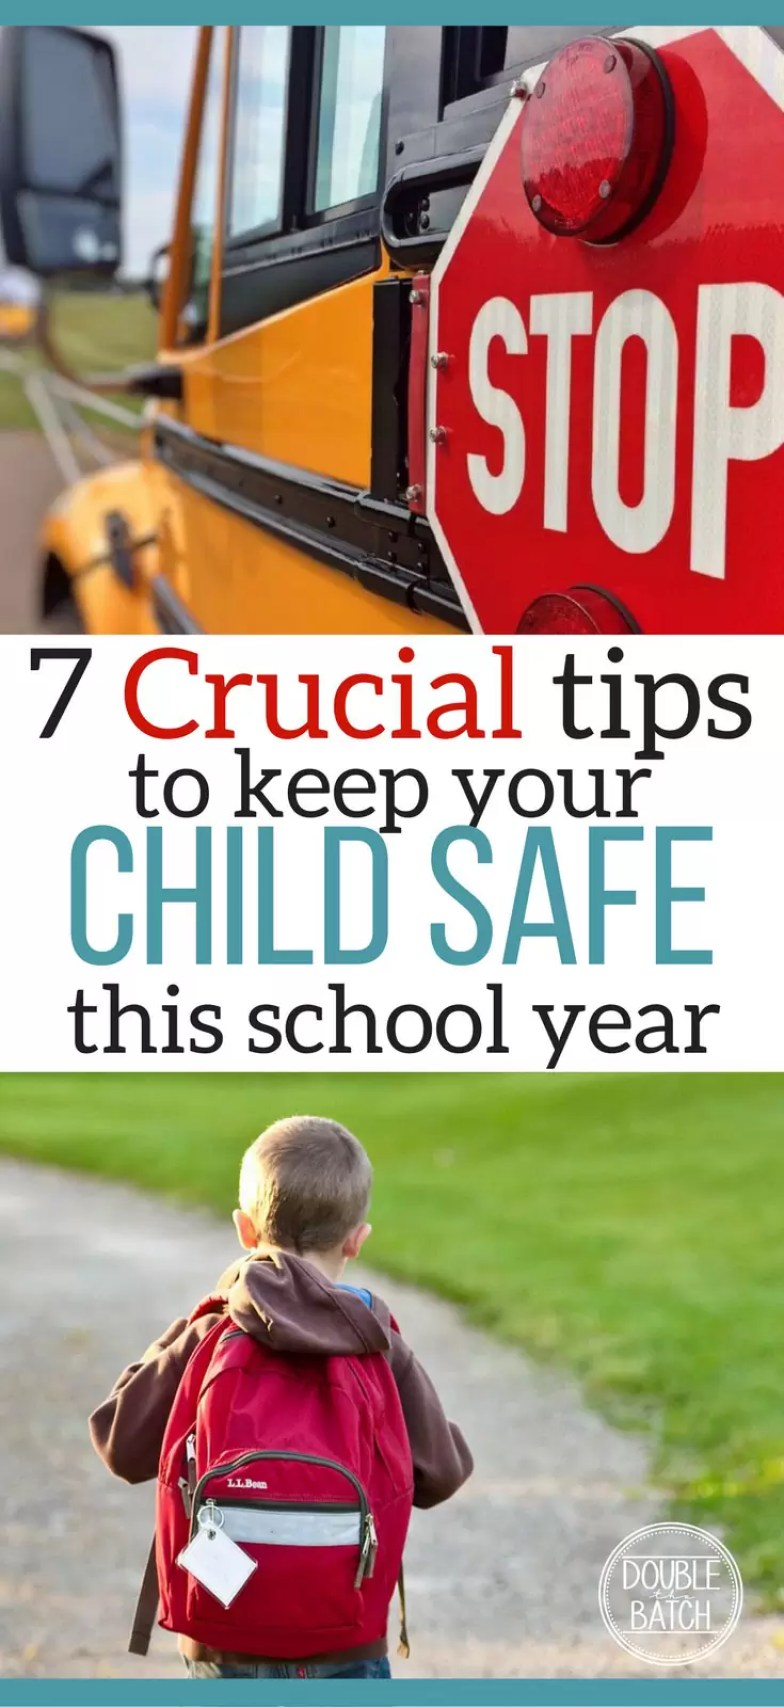 7 Crucial Tips to Keep your Child Safe this school year